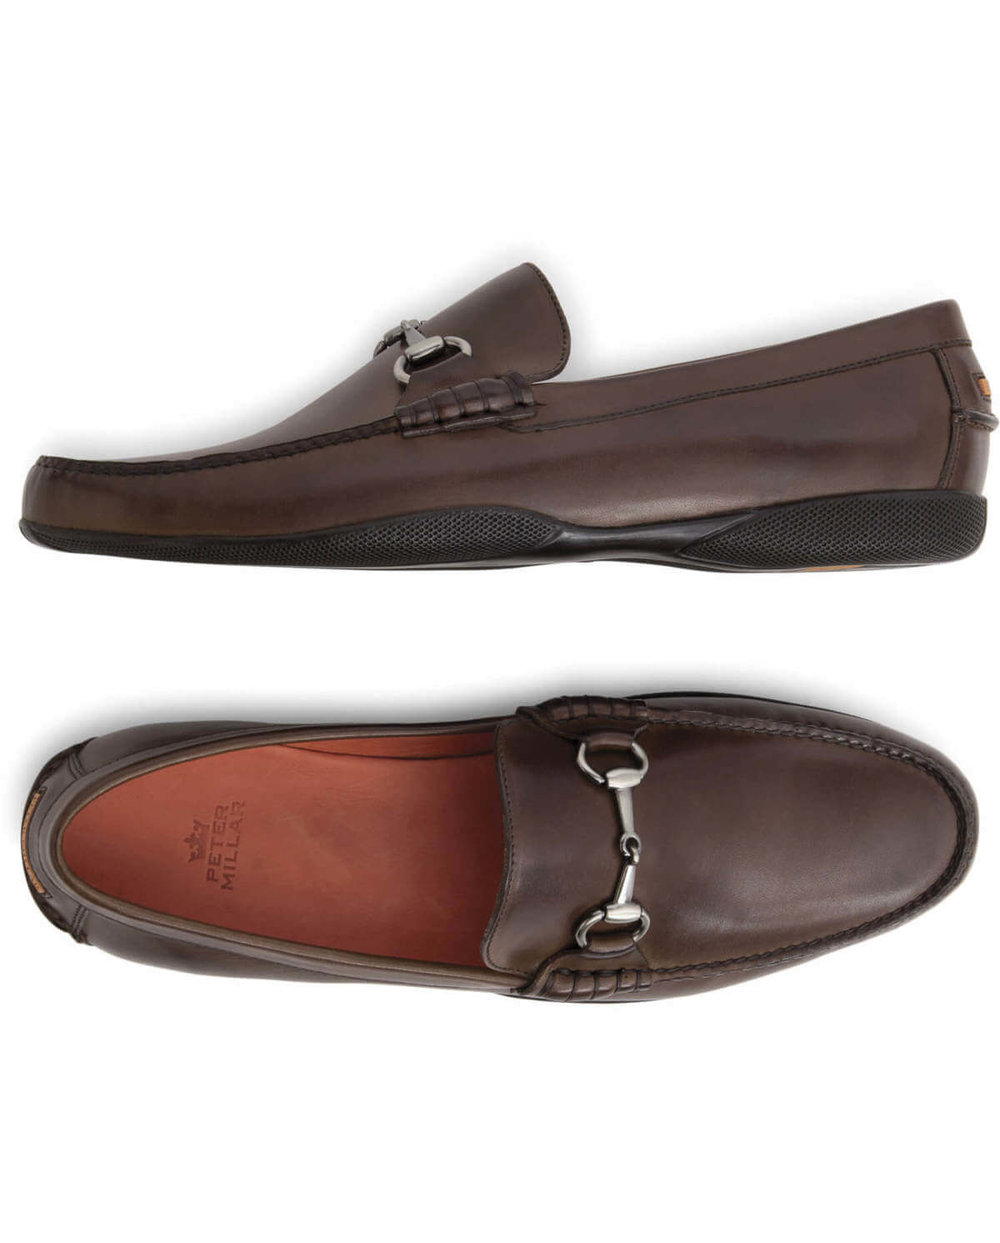 Men's Peter Millar Bit Loafer - $225